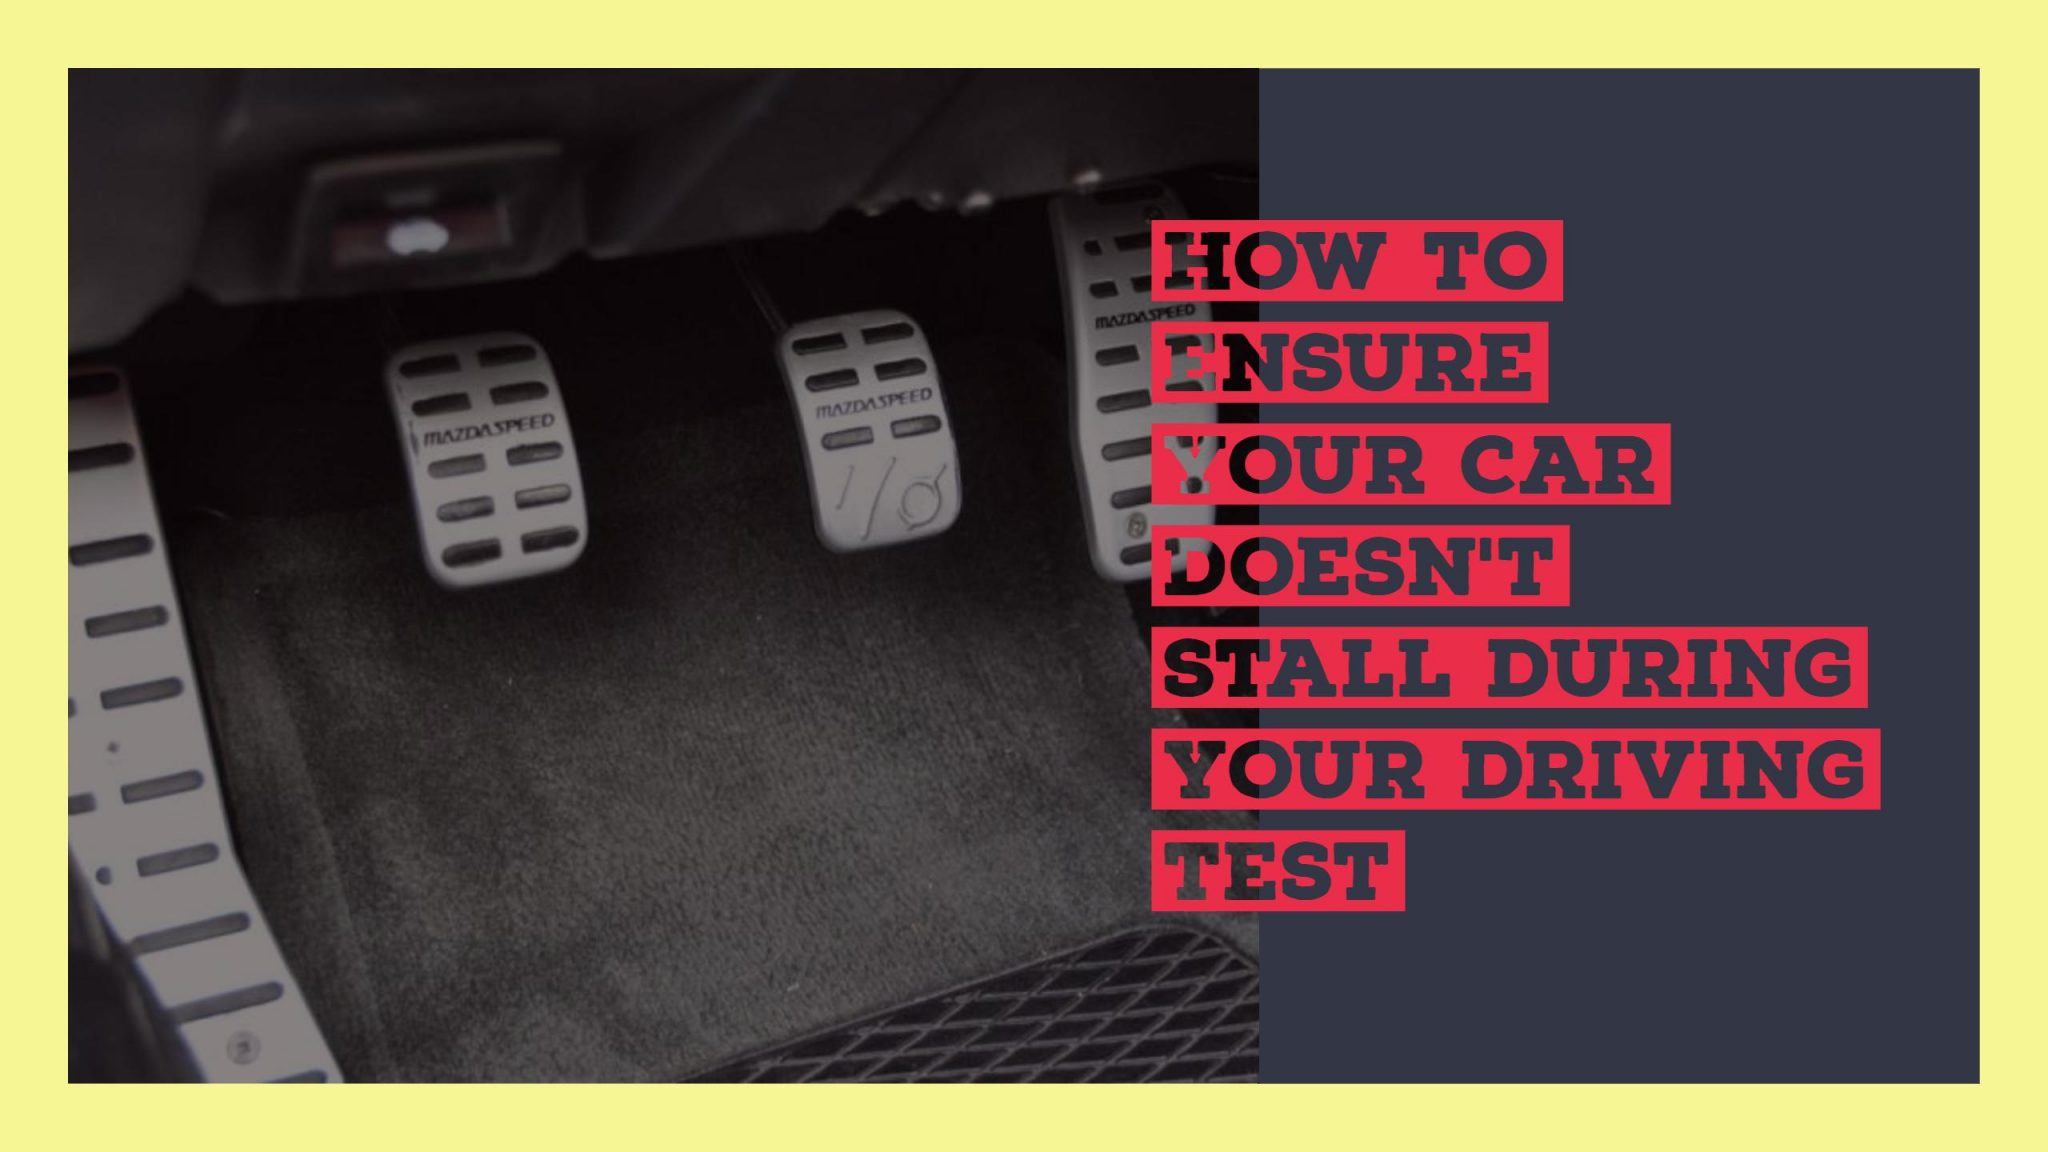 How To Ensure Your Car Doesn't Stall During Your Driving Test